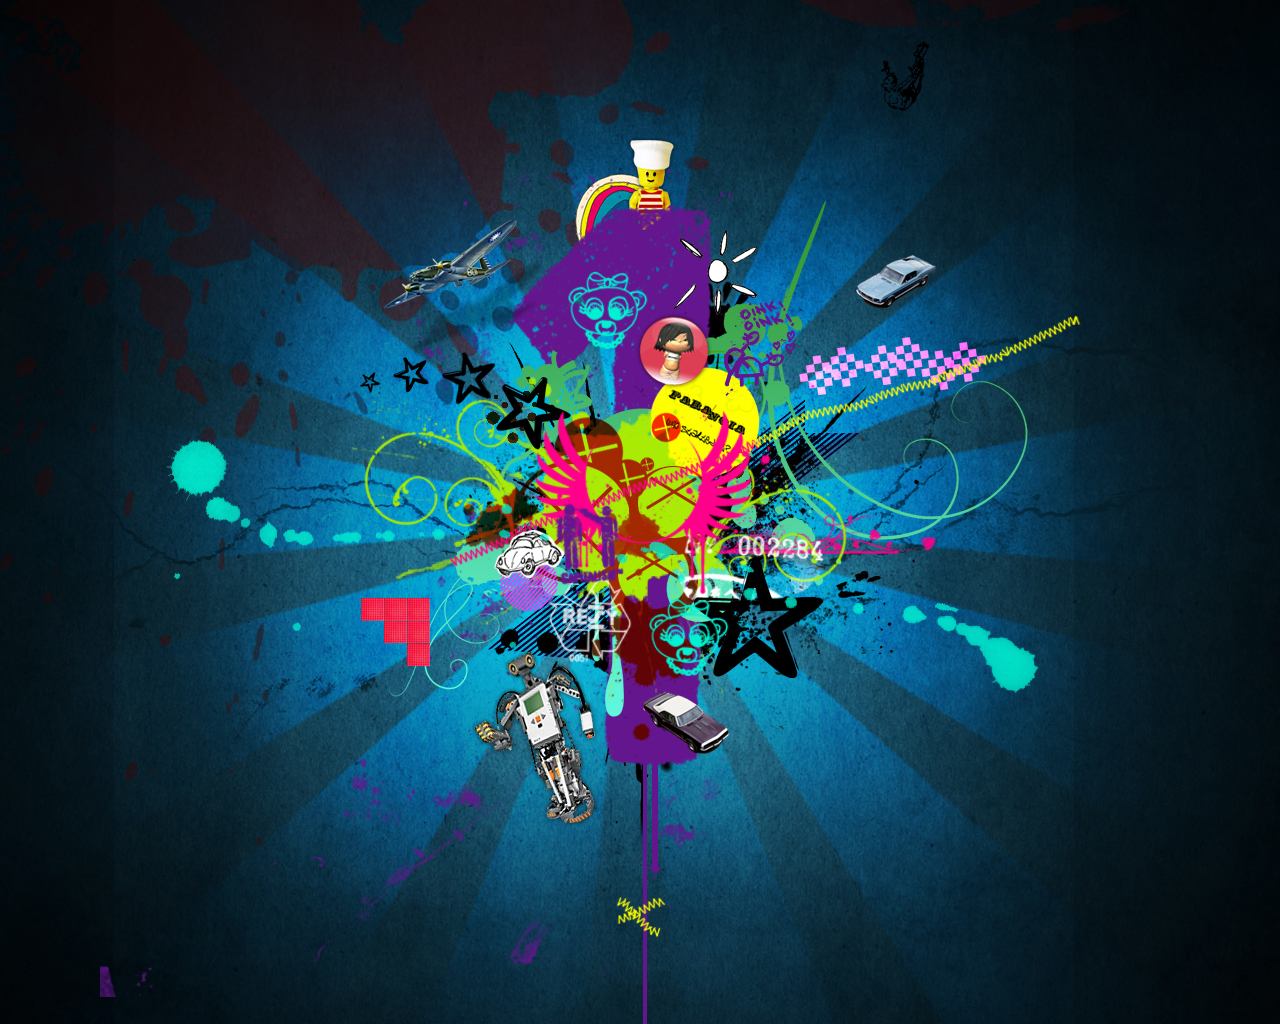 Cool graphic design wallpapers 1280x1024